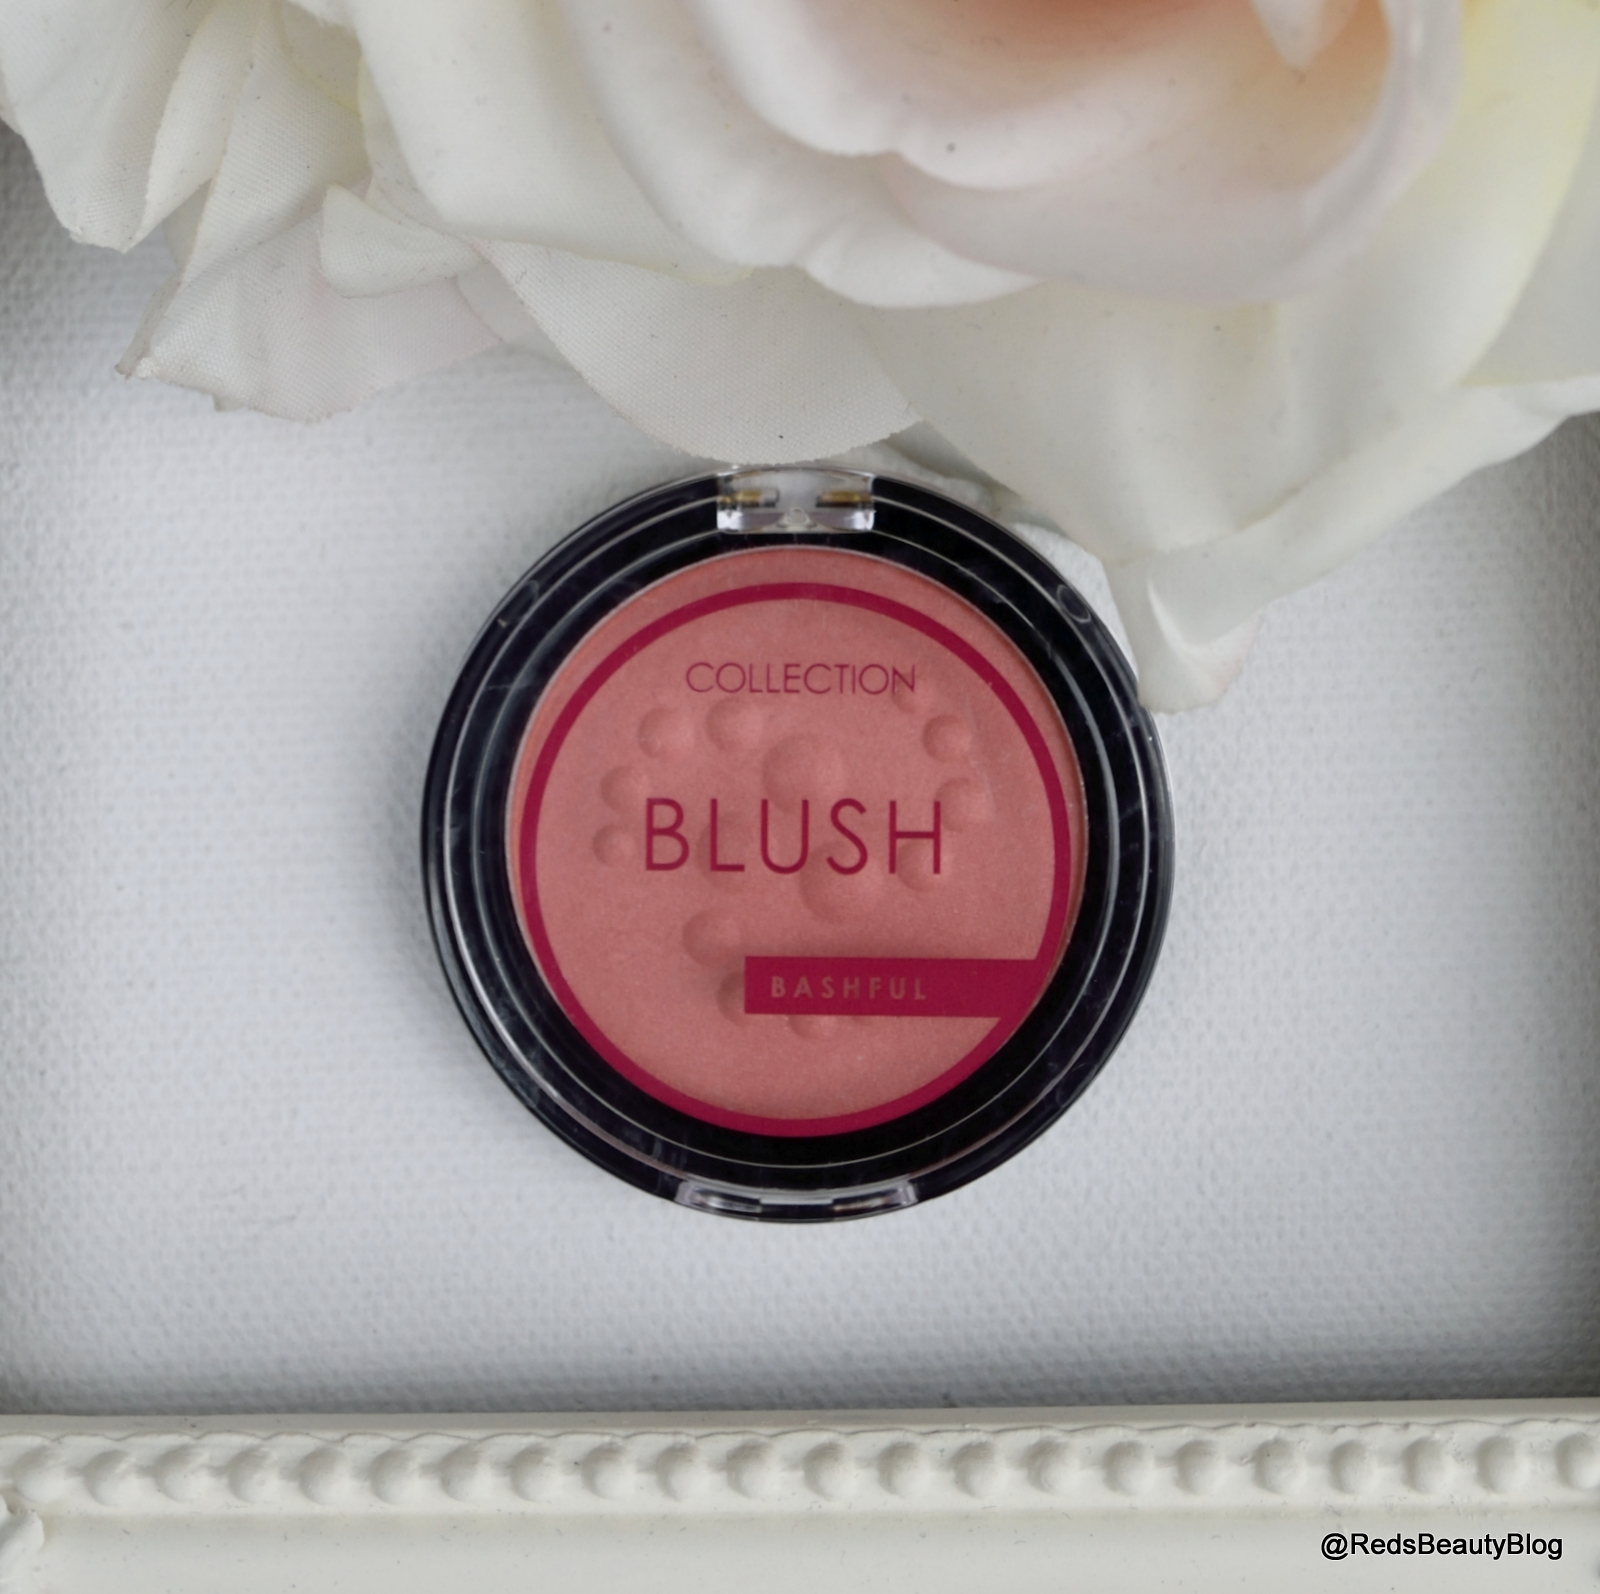 A picture of Collection Blush in Bashful